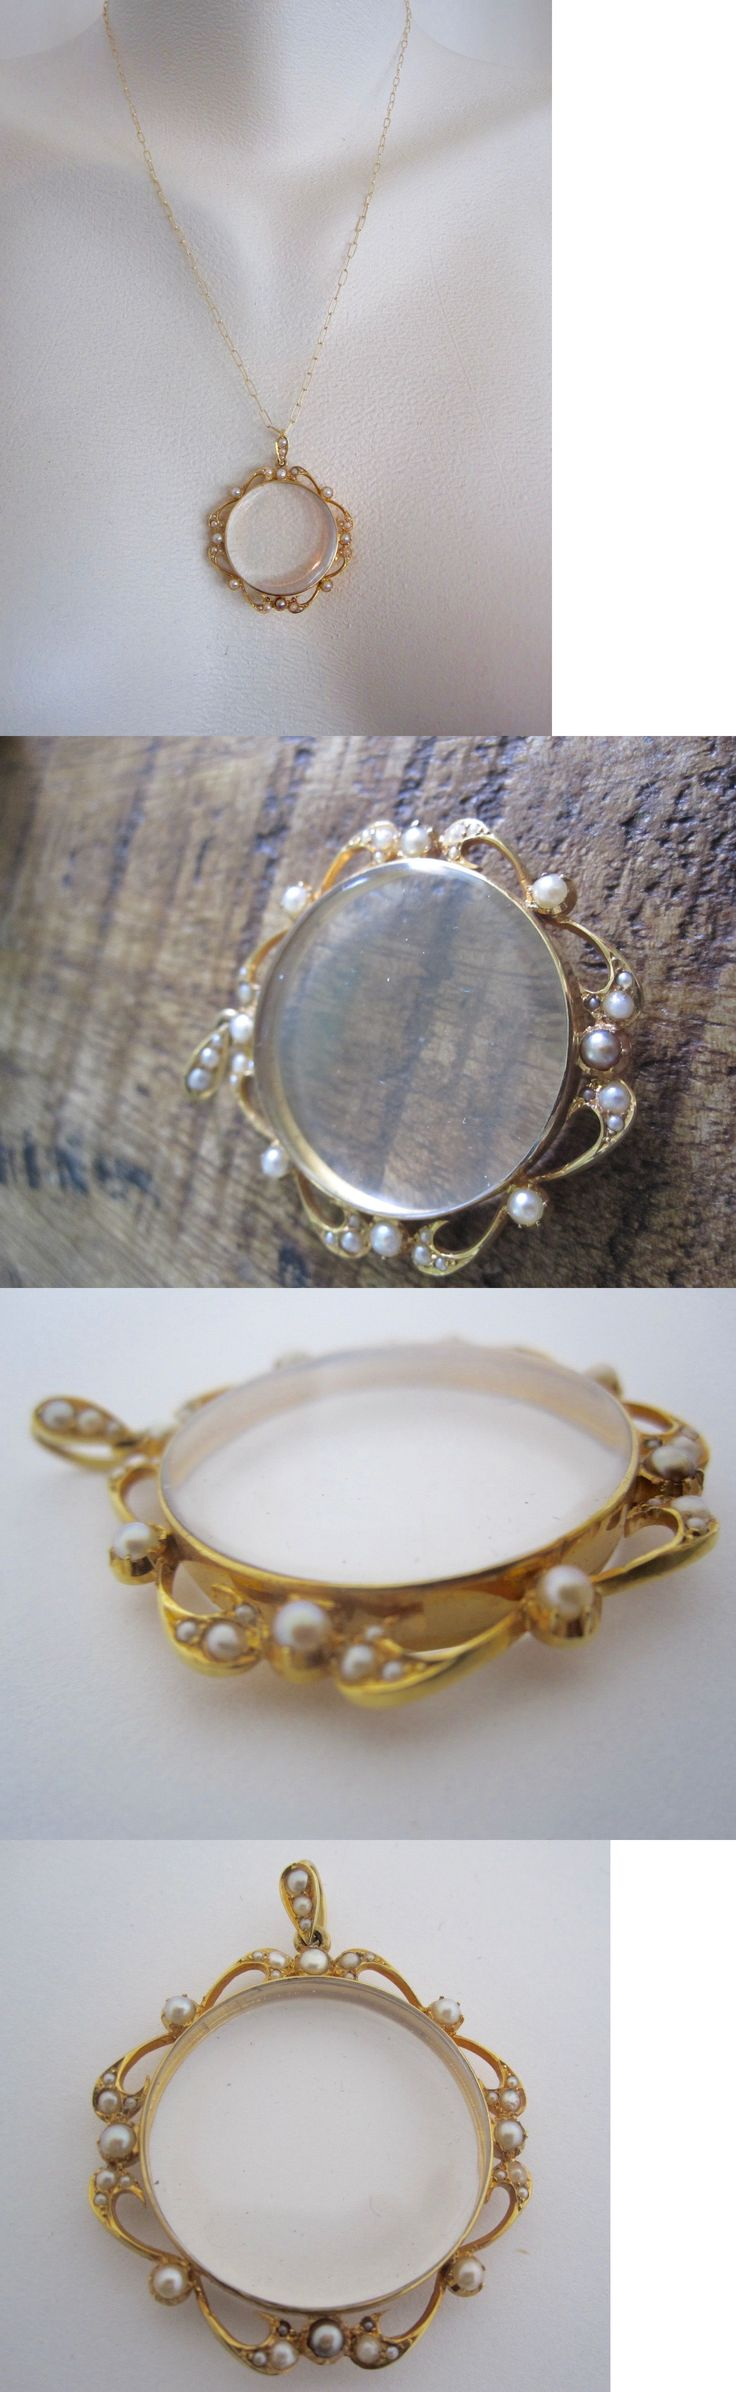 Other Fine Jewelry 1930s-1980s 91438: ~~*14K Solid Yellow Gold Magnifying Glass Pendant With Pearl Accents*~~ BUY IT NOW ONLY: $465.0